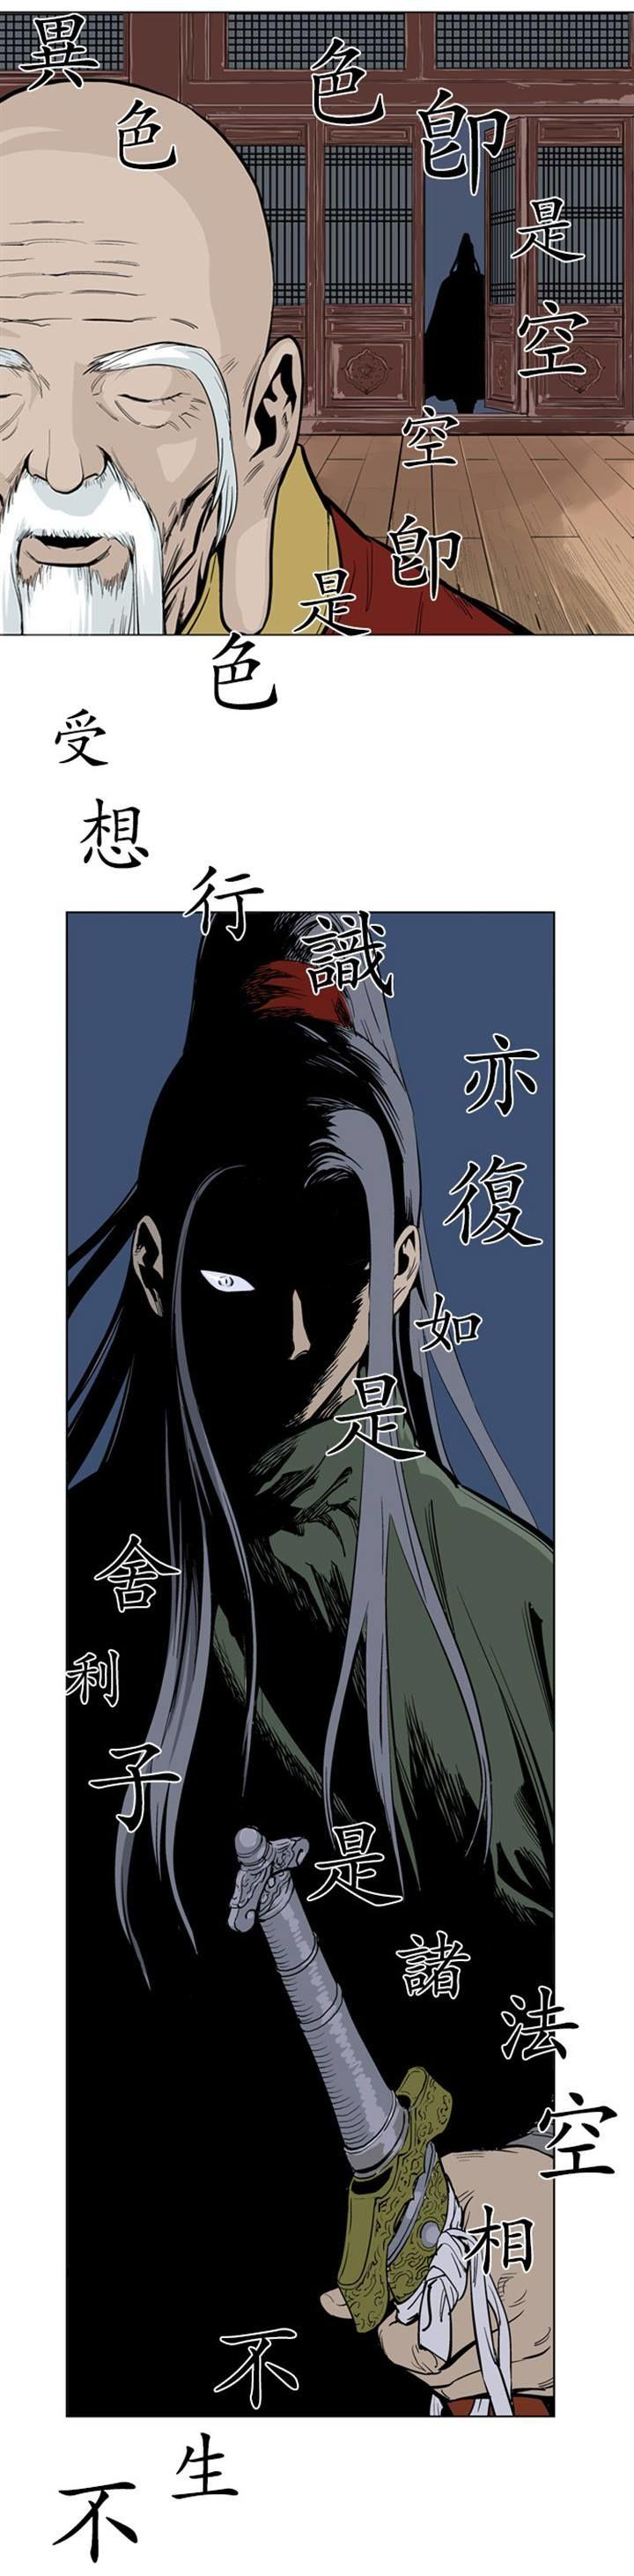 Gosu (The Master) - Chapter 13